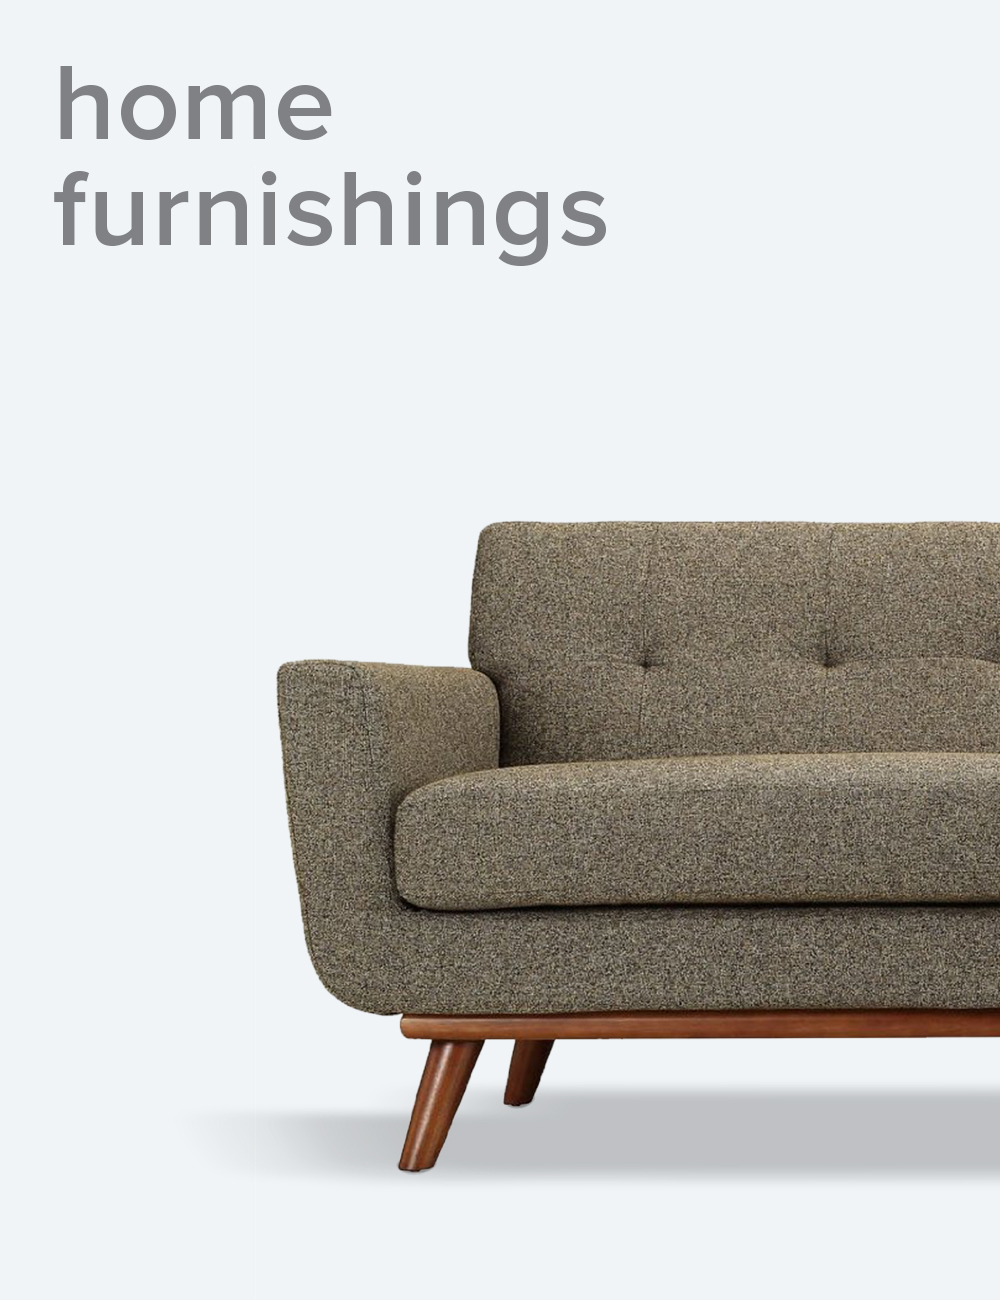 Home-furnishings